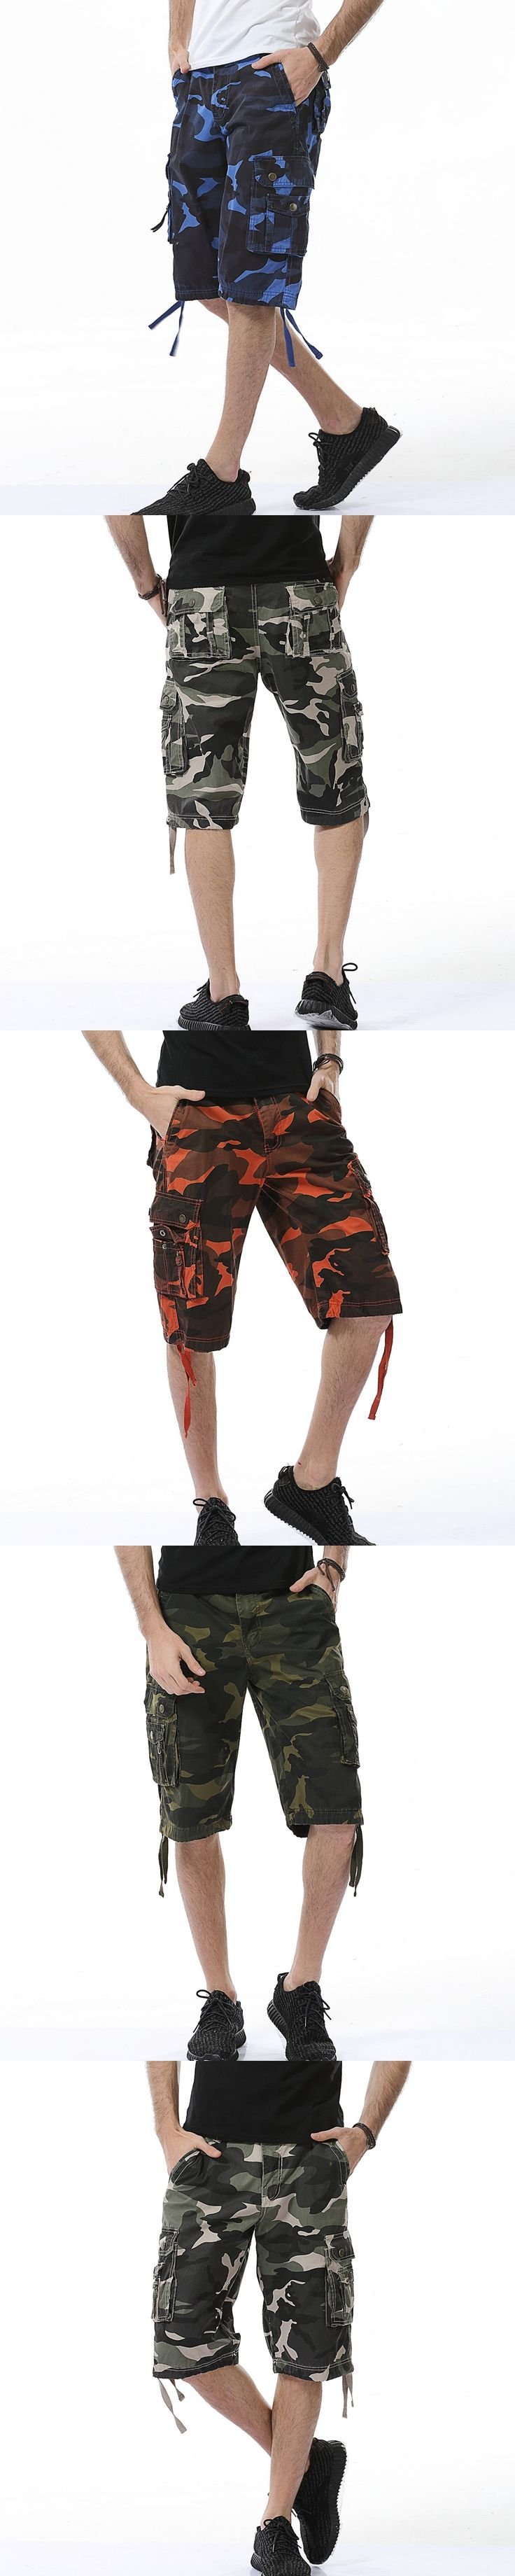 2017 New Cargo Shorts Men Top Design Camouflage Military Army Shorts Male Summer Hot Sale Cotton High Quality Mens Shorts 29-38